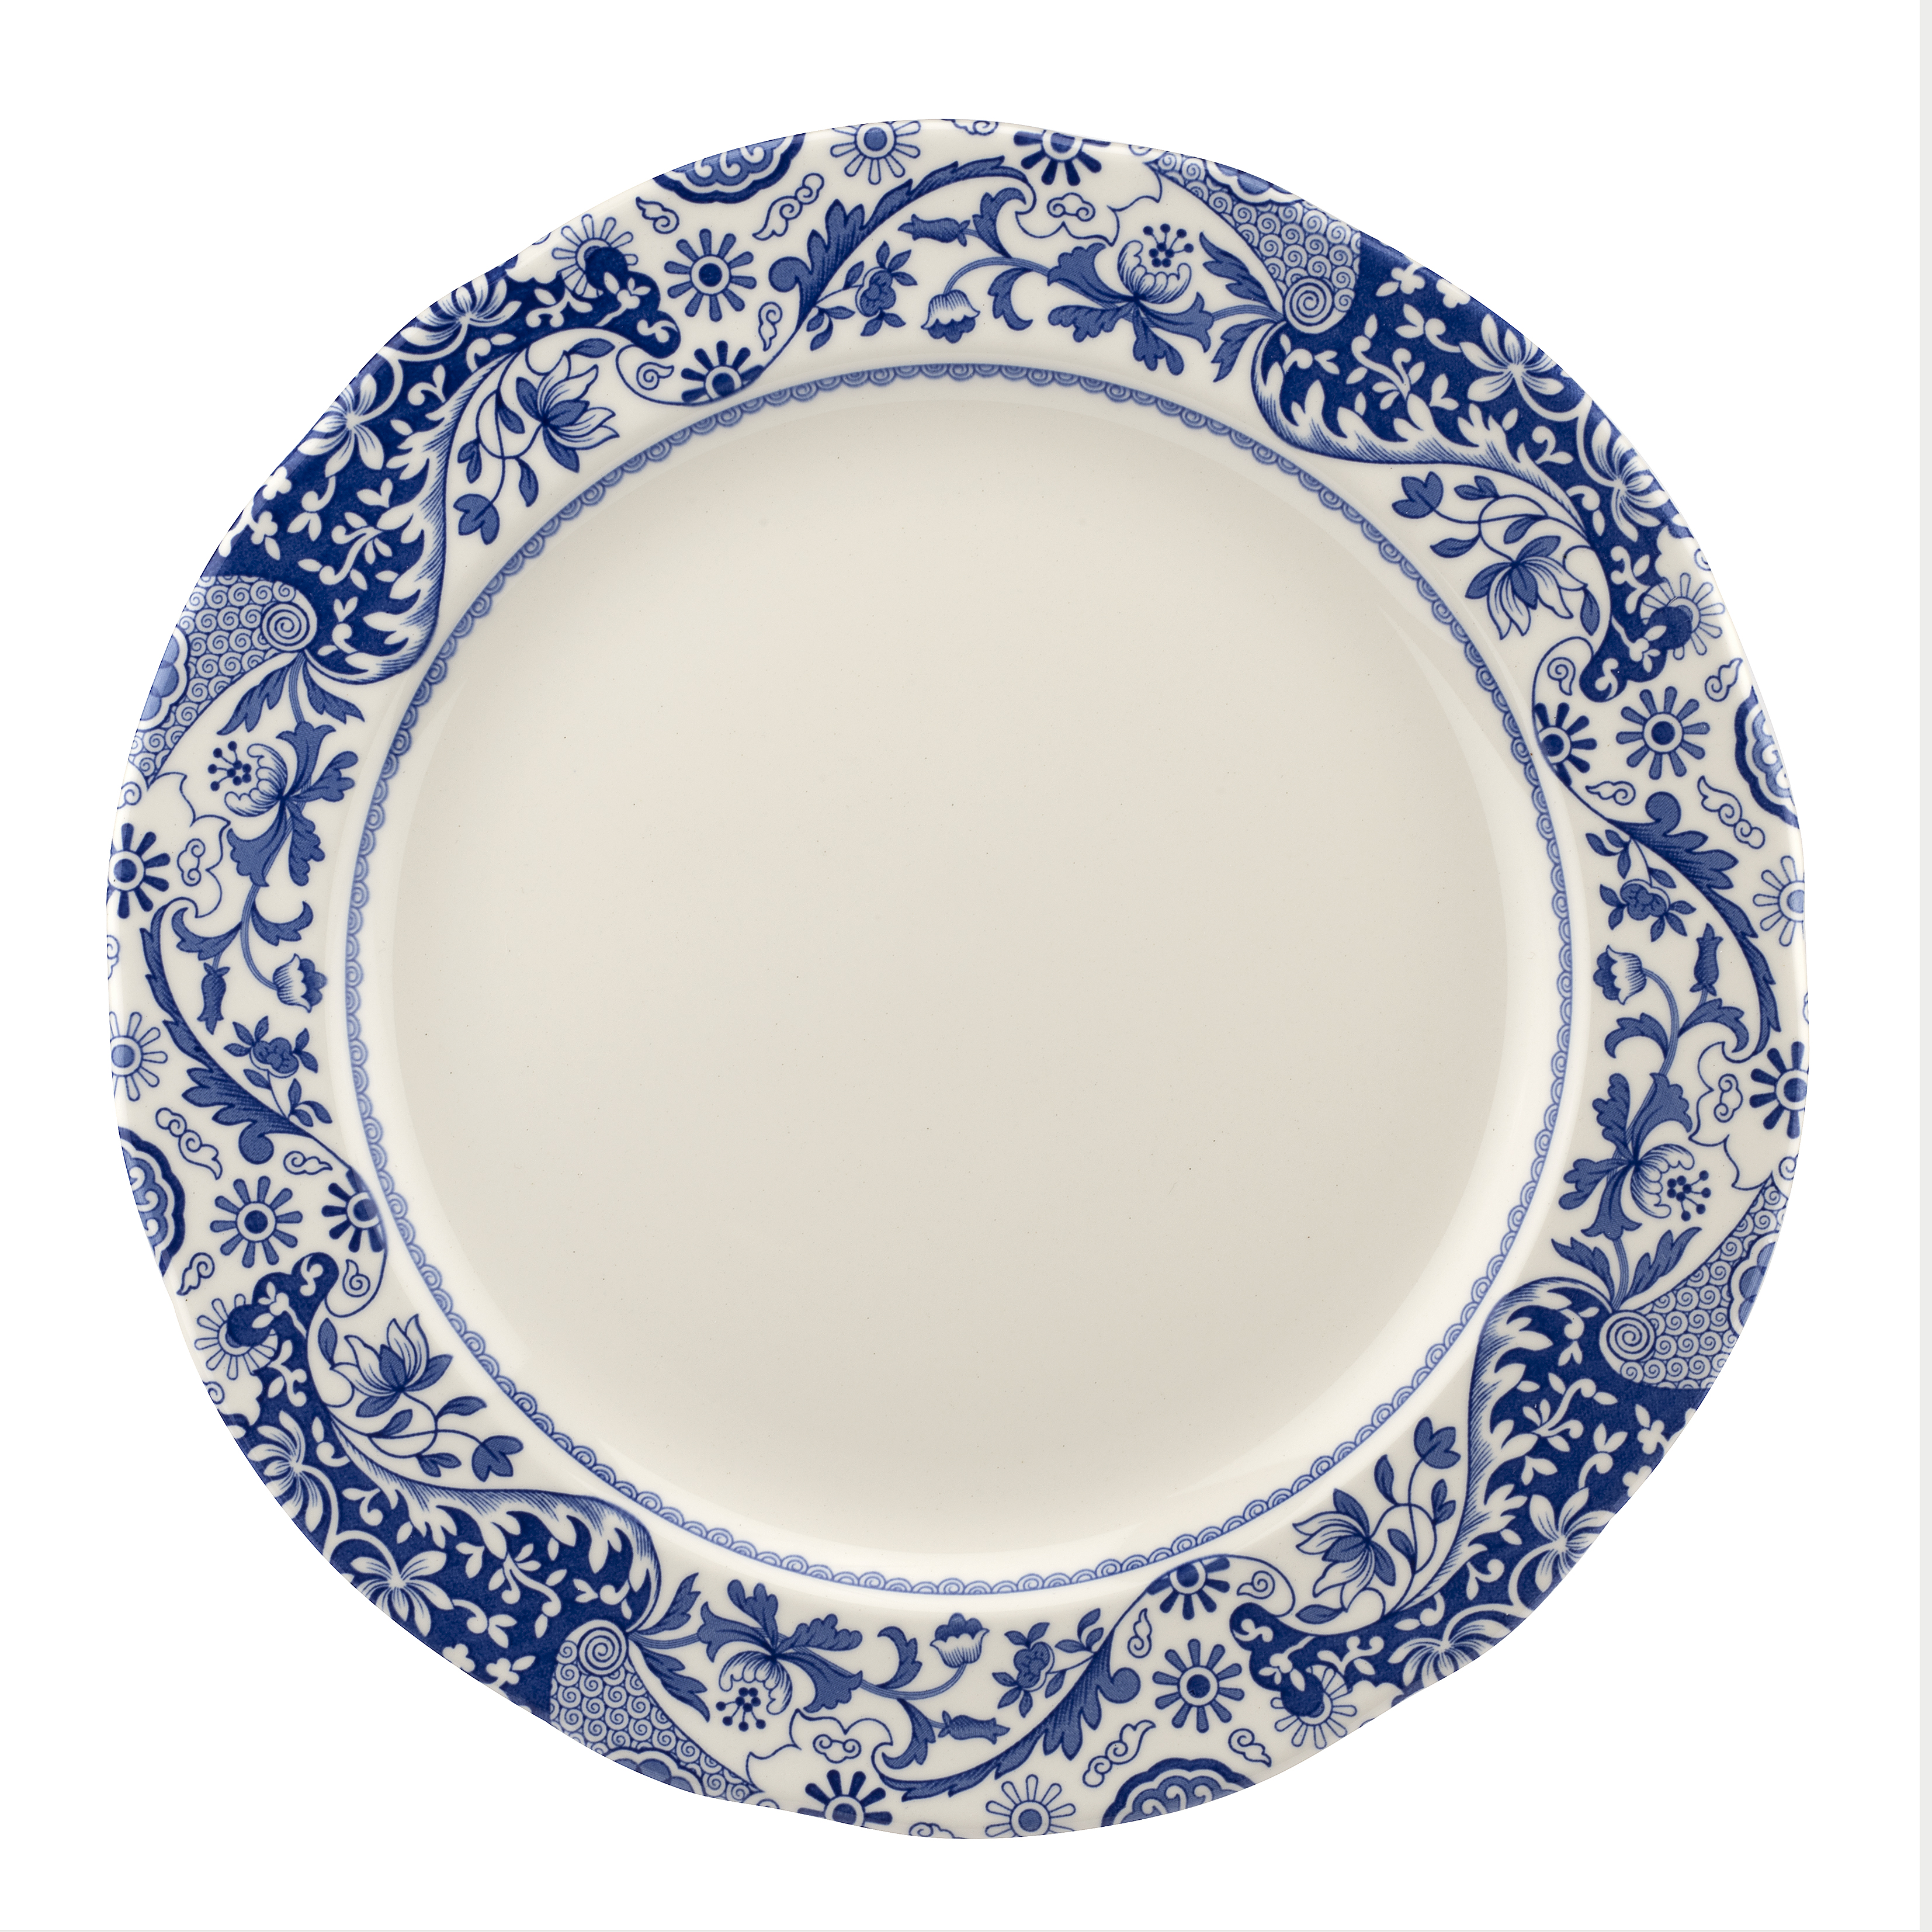 Spode Blue Italian Brocato 12 Inch Charger image number 0